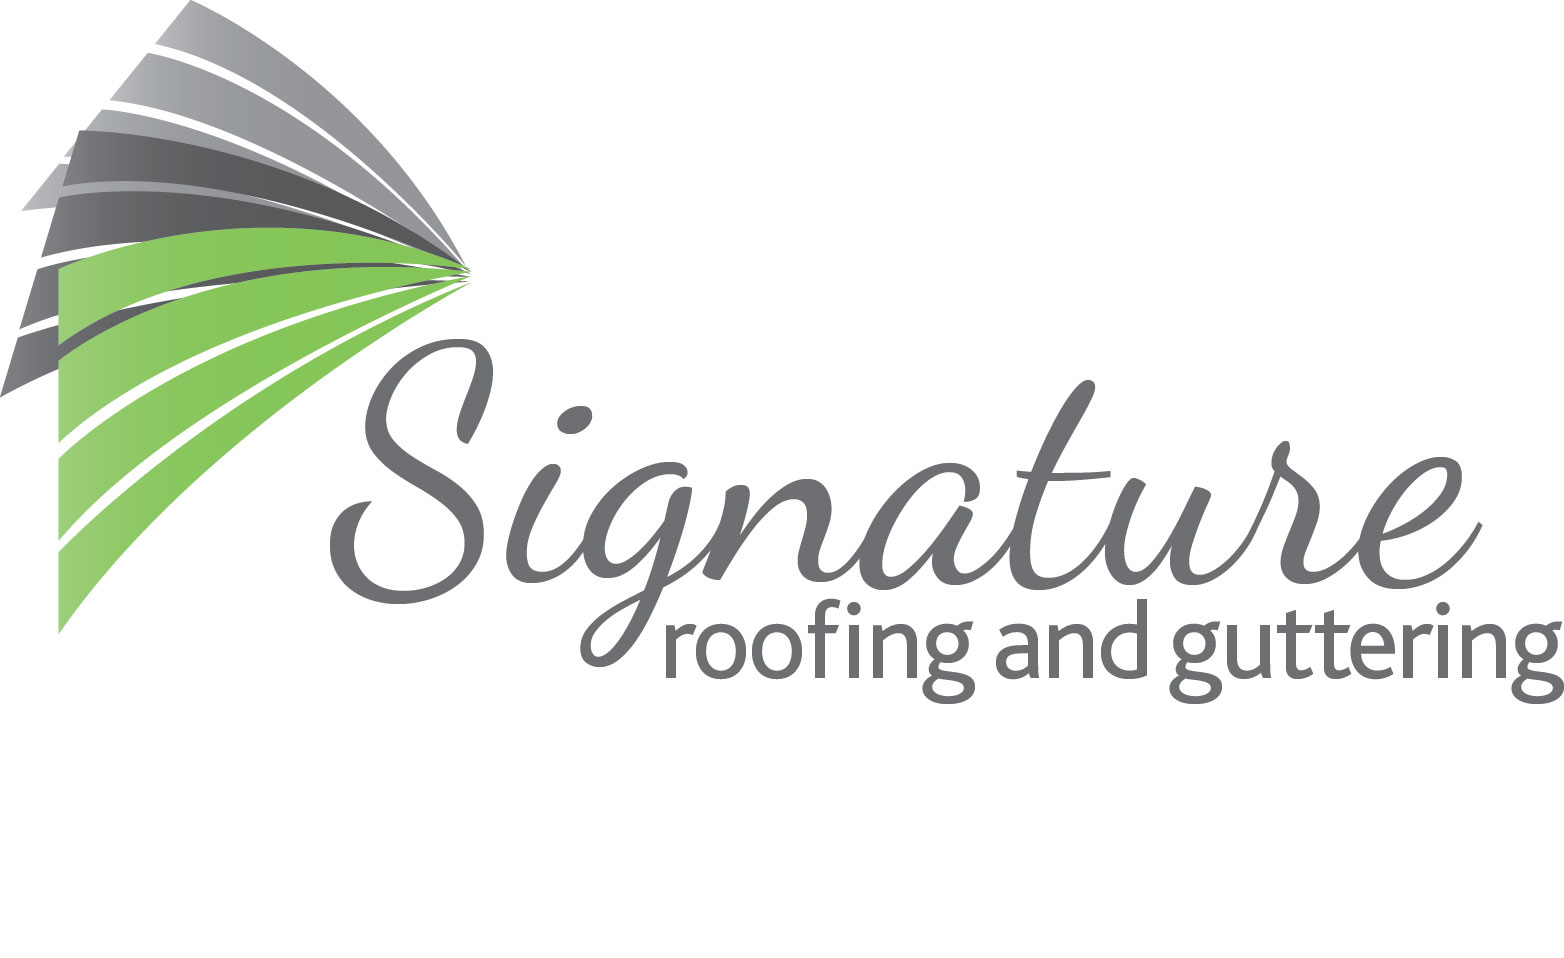 Sunshine Coast Roofing, Reroofing, Roof Replacement and Guttering Experts